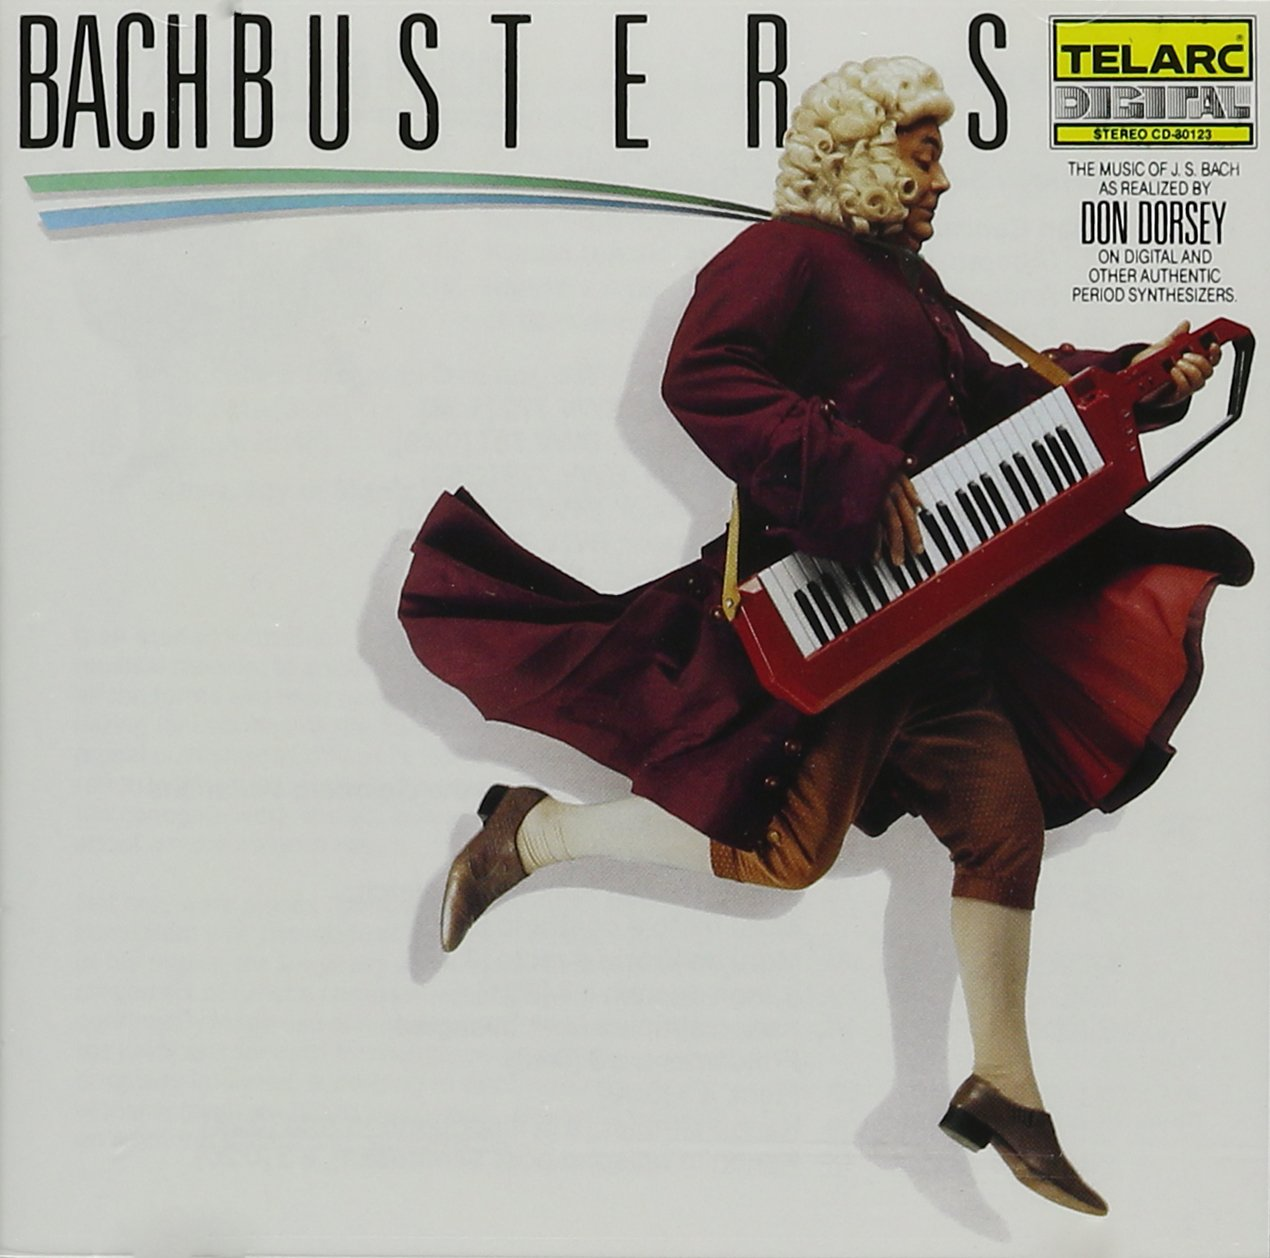 Don Dorsey - Bachbusters (Music Of J.S. Bach As Realized On ...